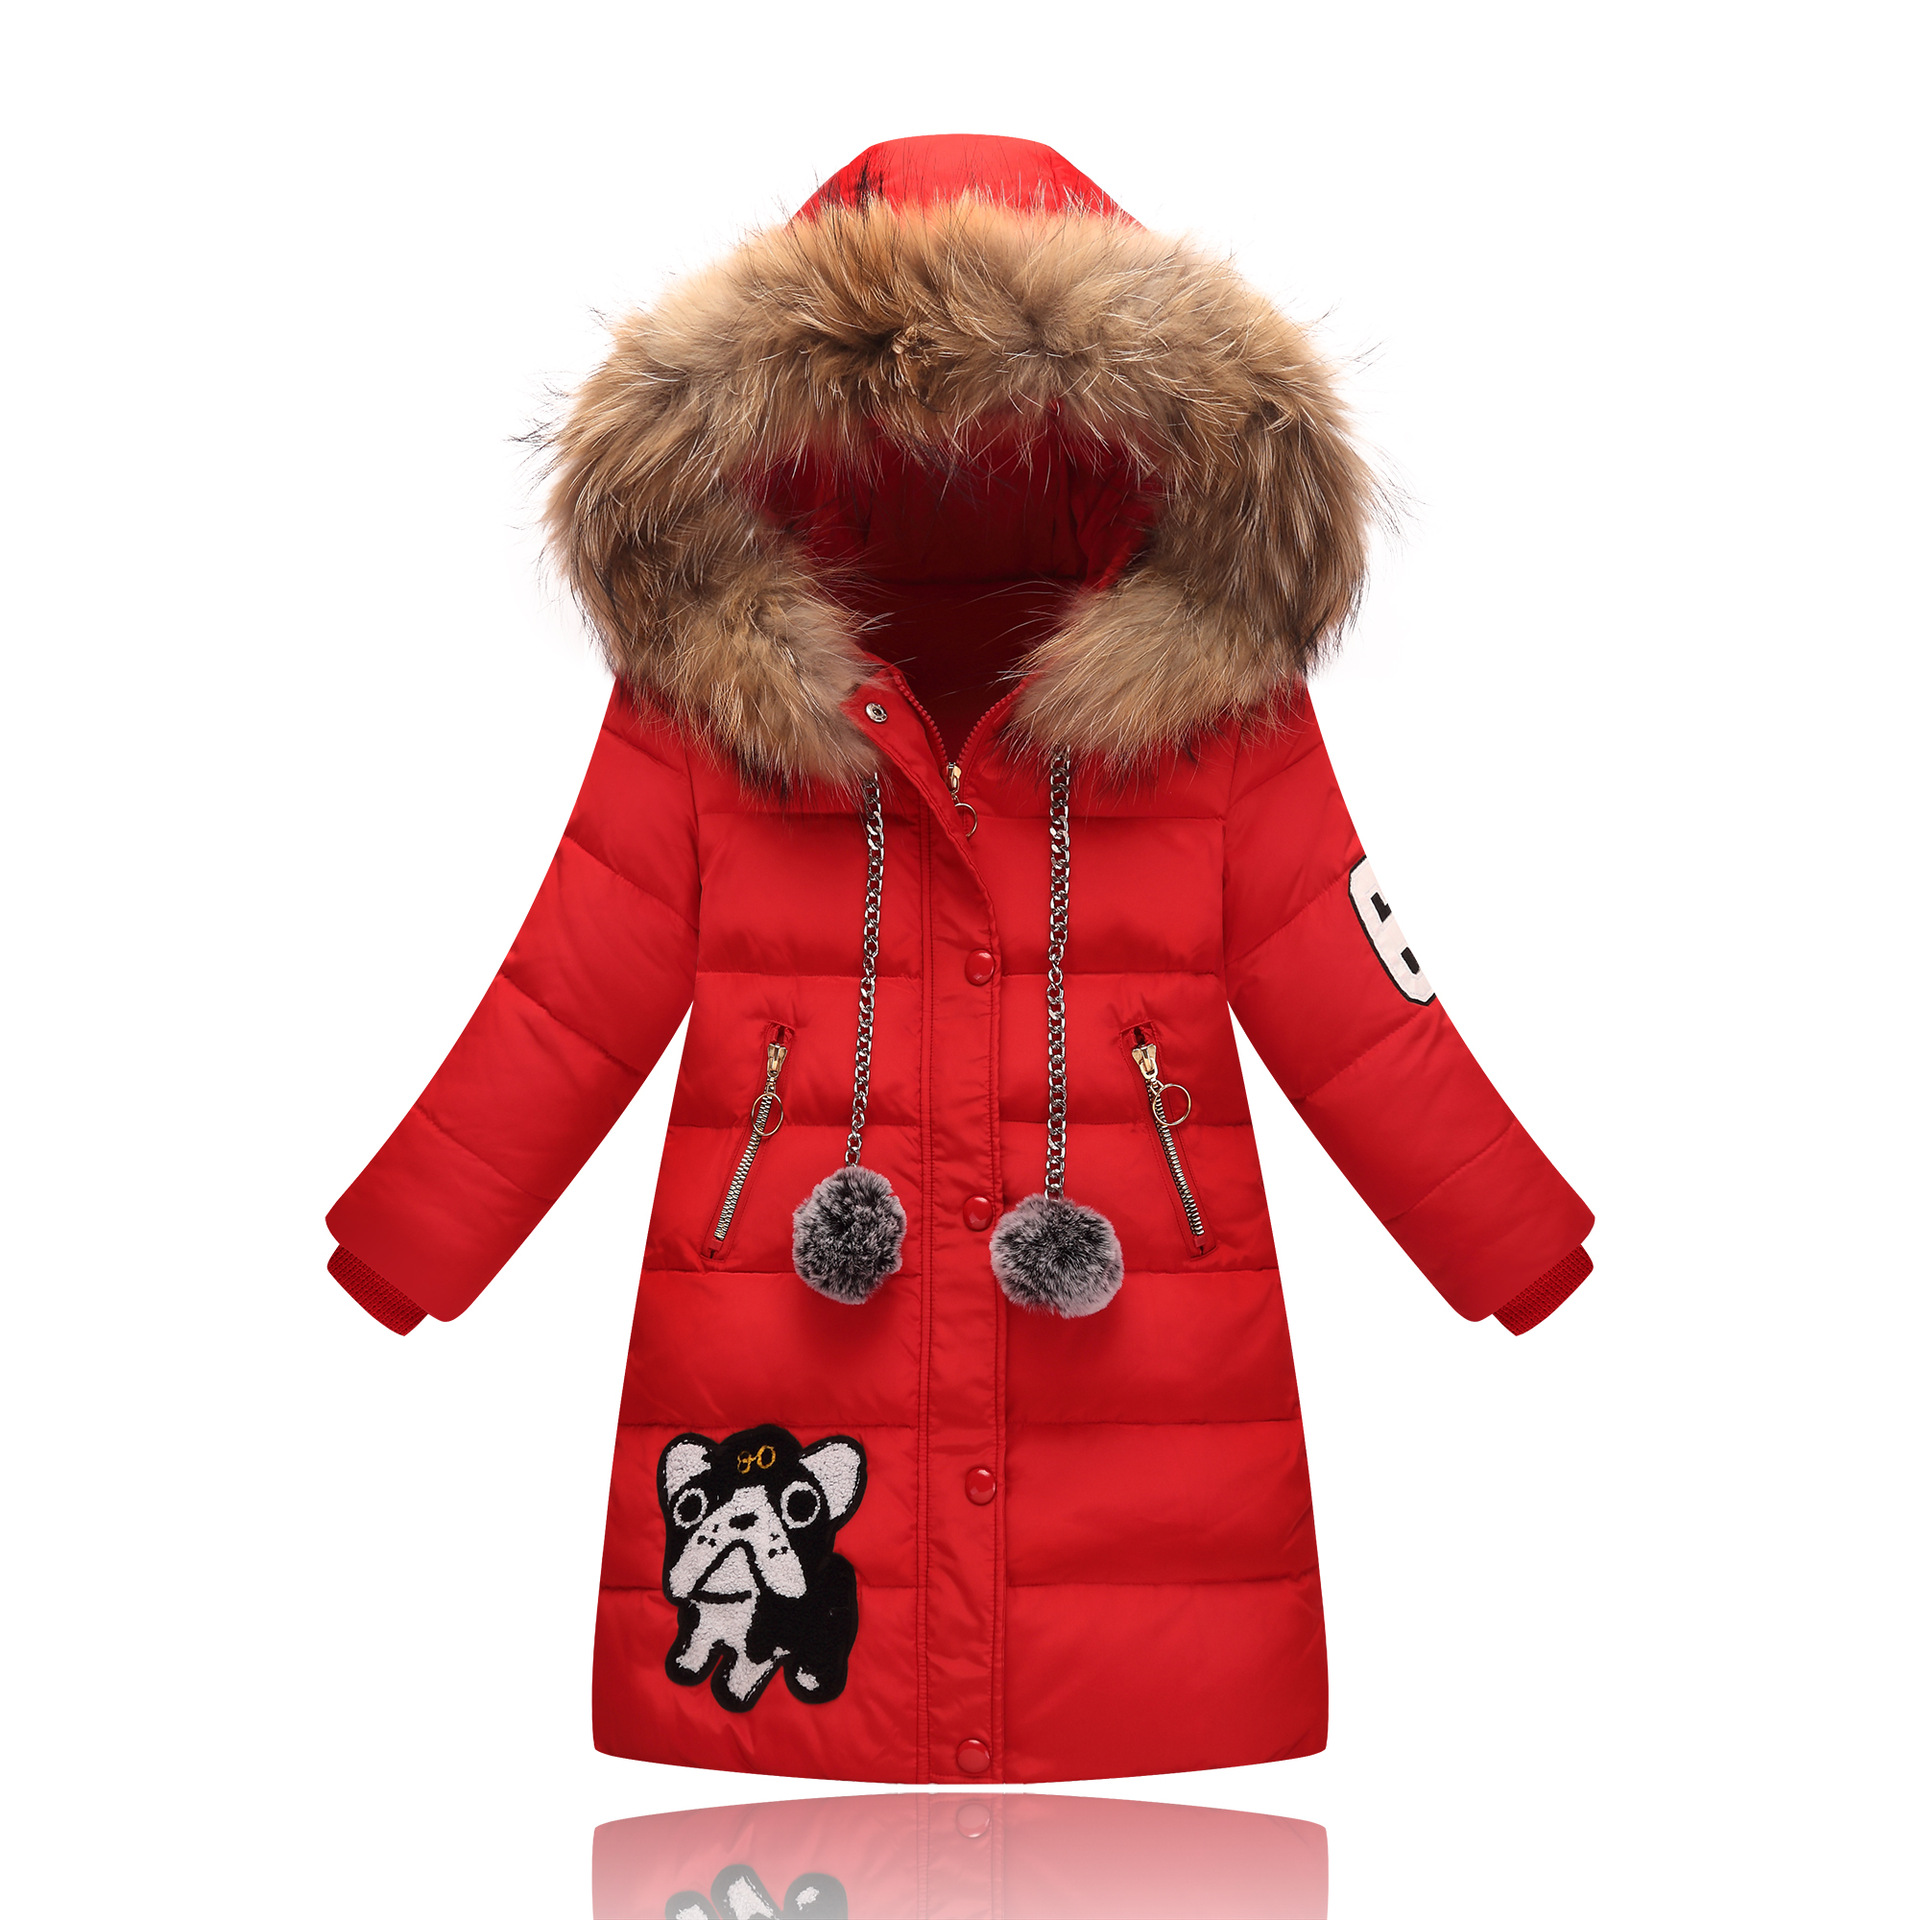 Boys Super Warm Jacket Parka Outerwear Child Winter Jackets Down Coats Teenager Boy Cotton Down 7 9 11 13 Year Kids Fur Clothes 2017 fashion teenager motorcycle coats boys leather jackets patchwork children outerwear letter printed boy faux leather jacket